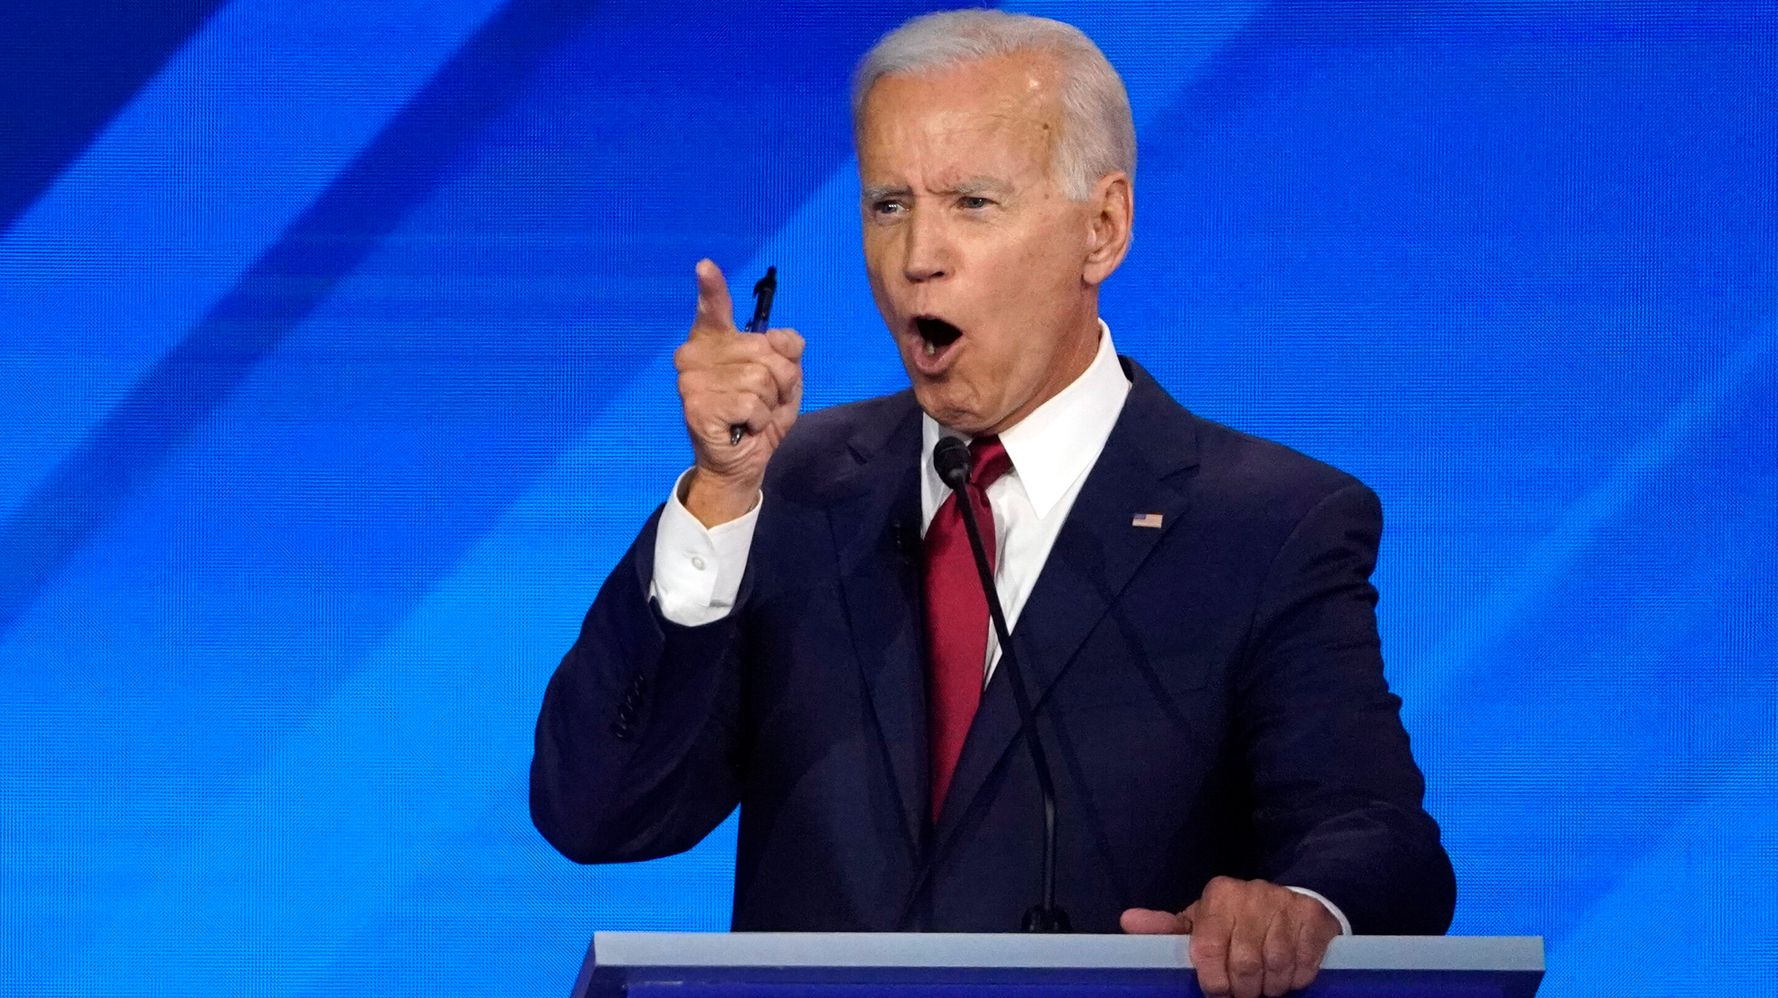 Westlake Legal Group 5d7bf9303b0000039fd29e87 Joe Biden Pledges To Release Medical Records Before First Votes In Nomination Race